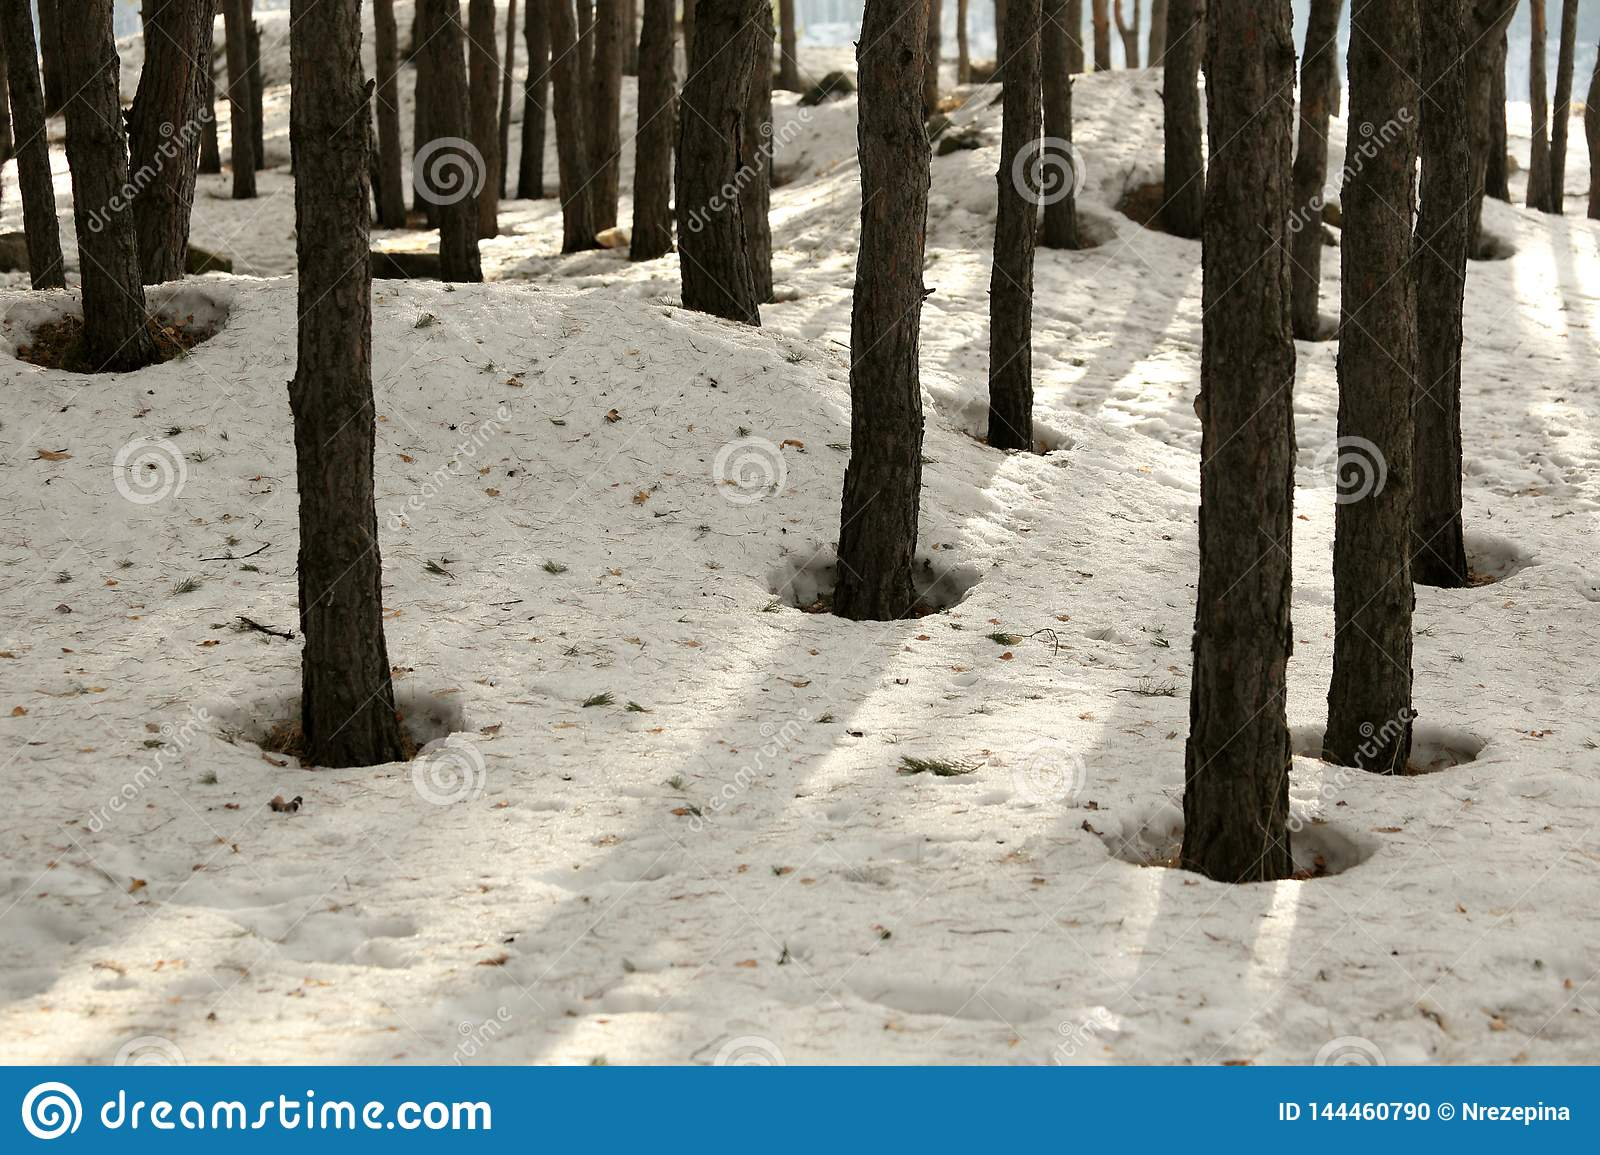 Snow in a pine forest in spring